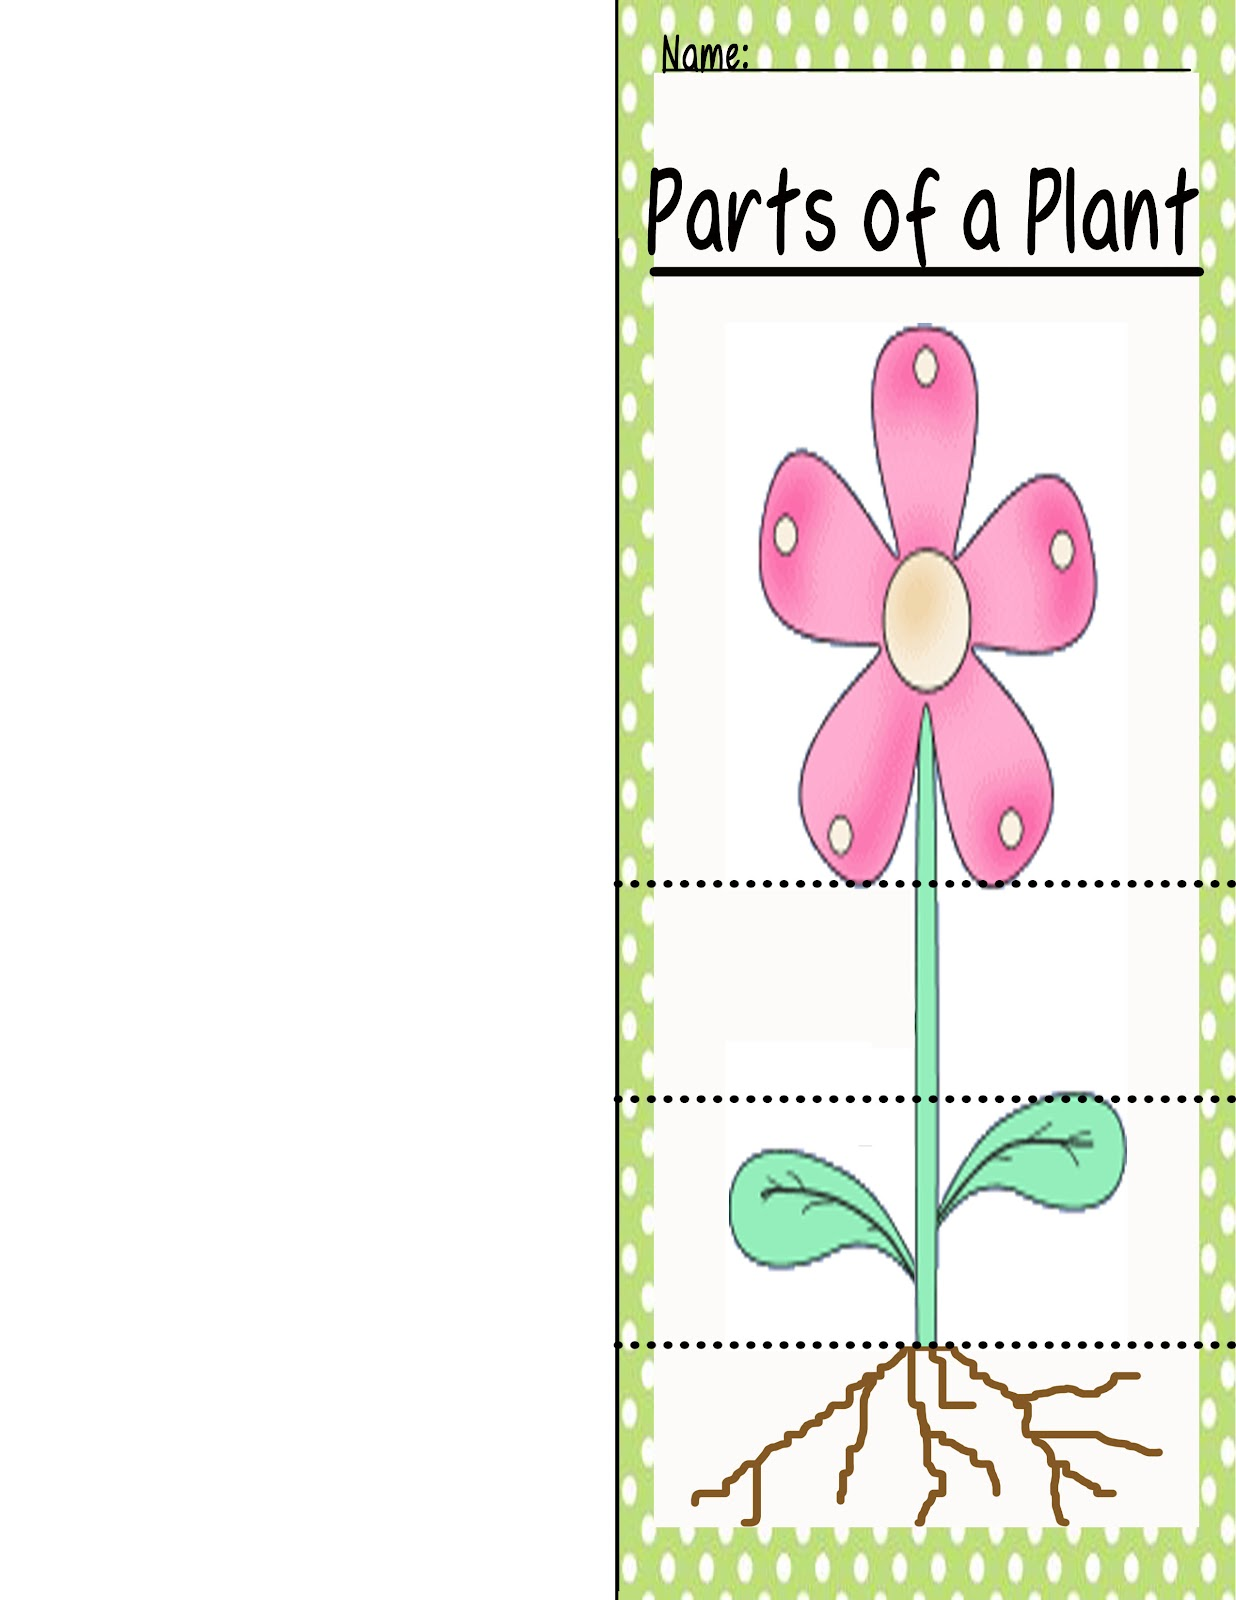 Plant Parts Used for Food http://polkadotsandteachingtots.blogspot.com/2012/07/50-follower-giveaway-structures-of.html